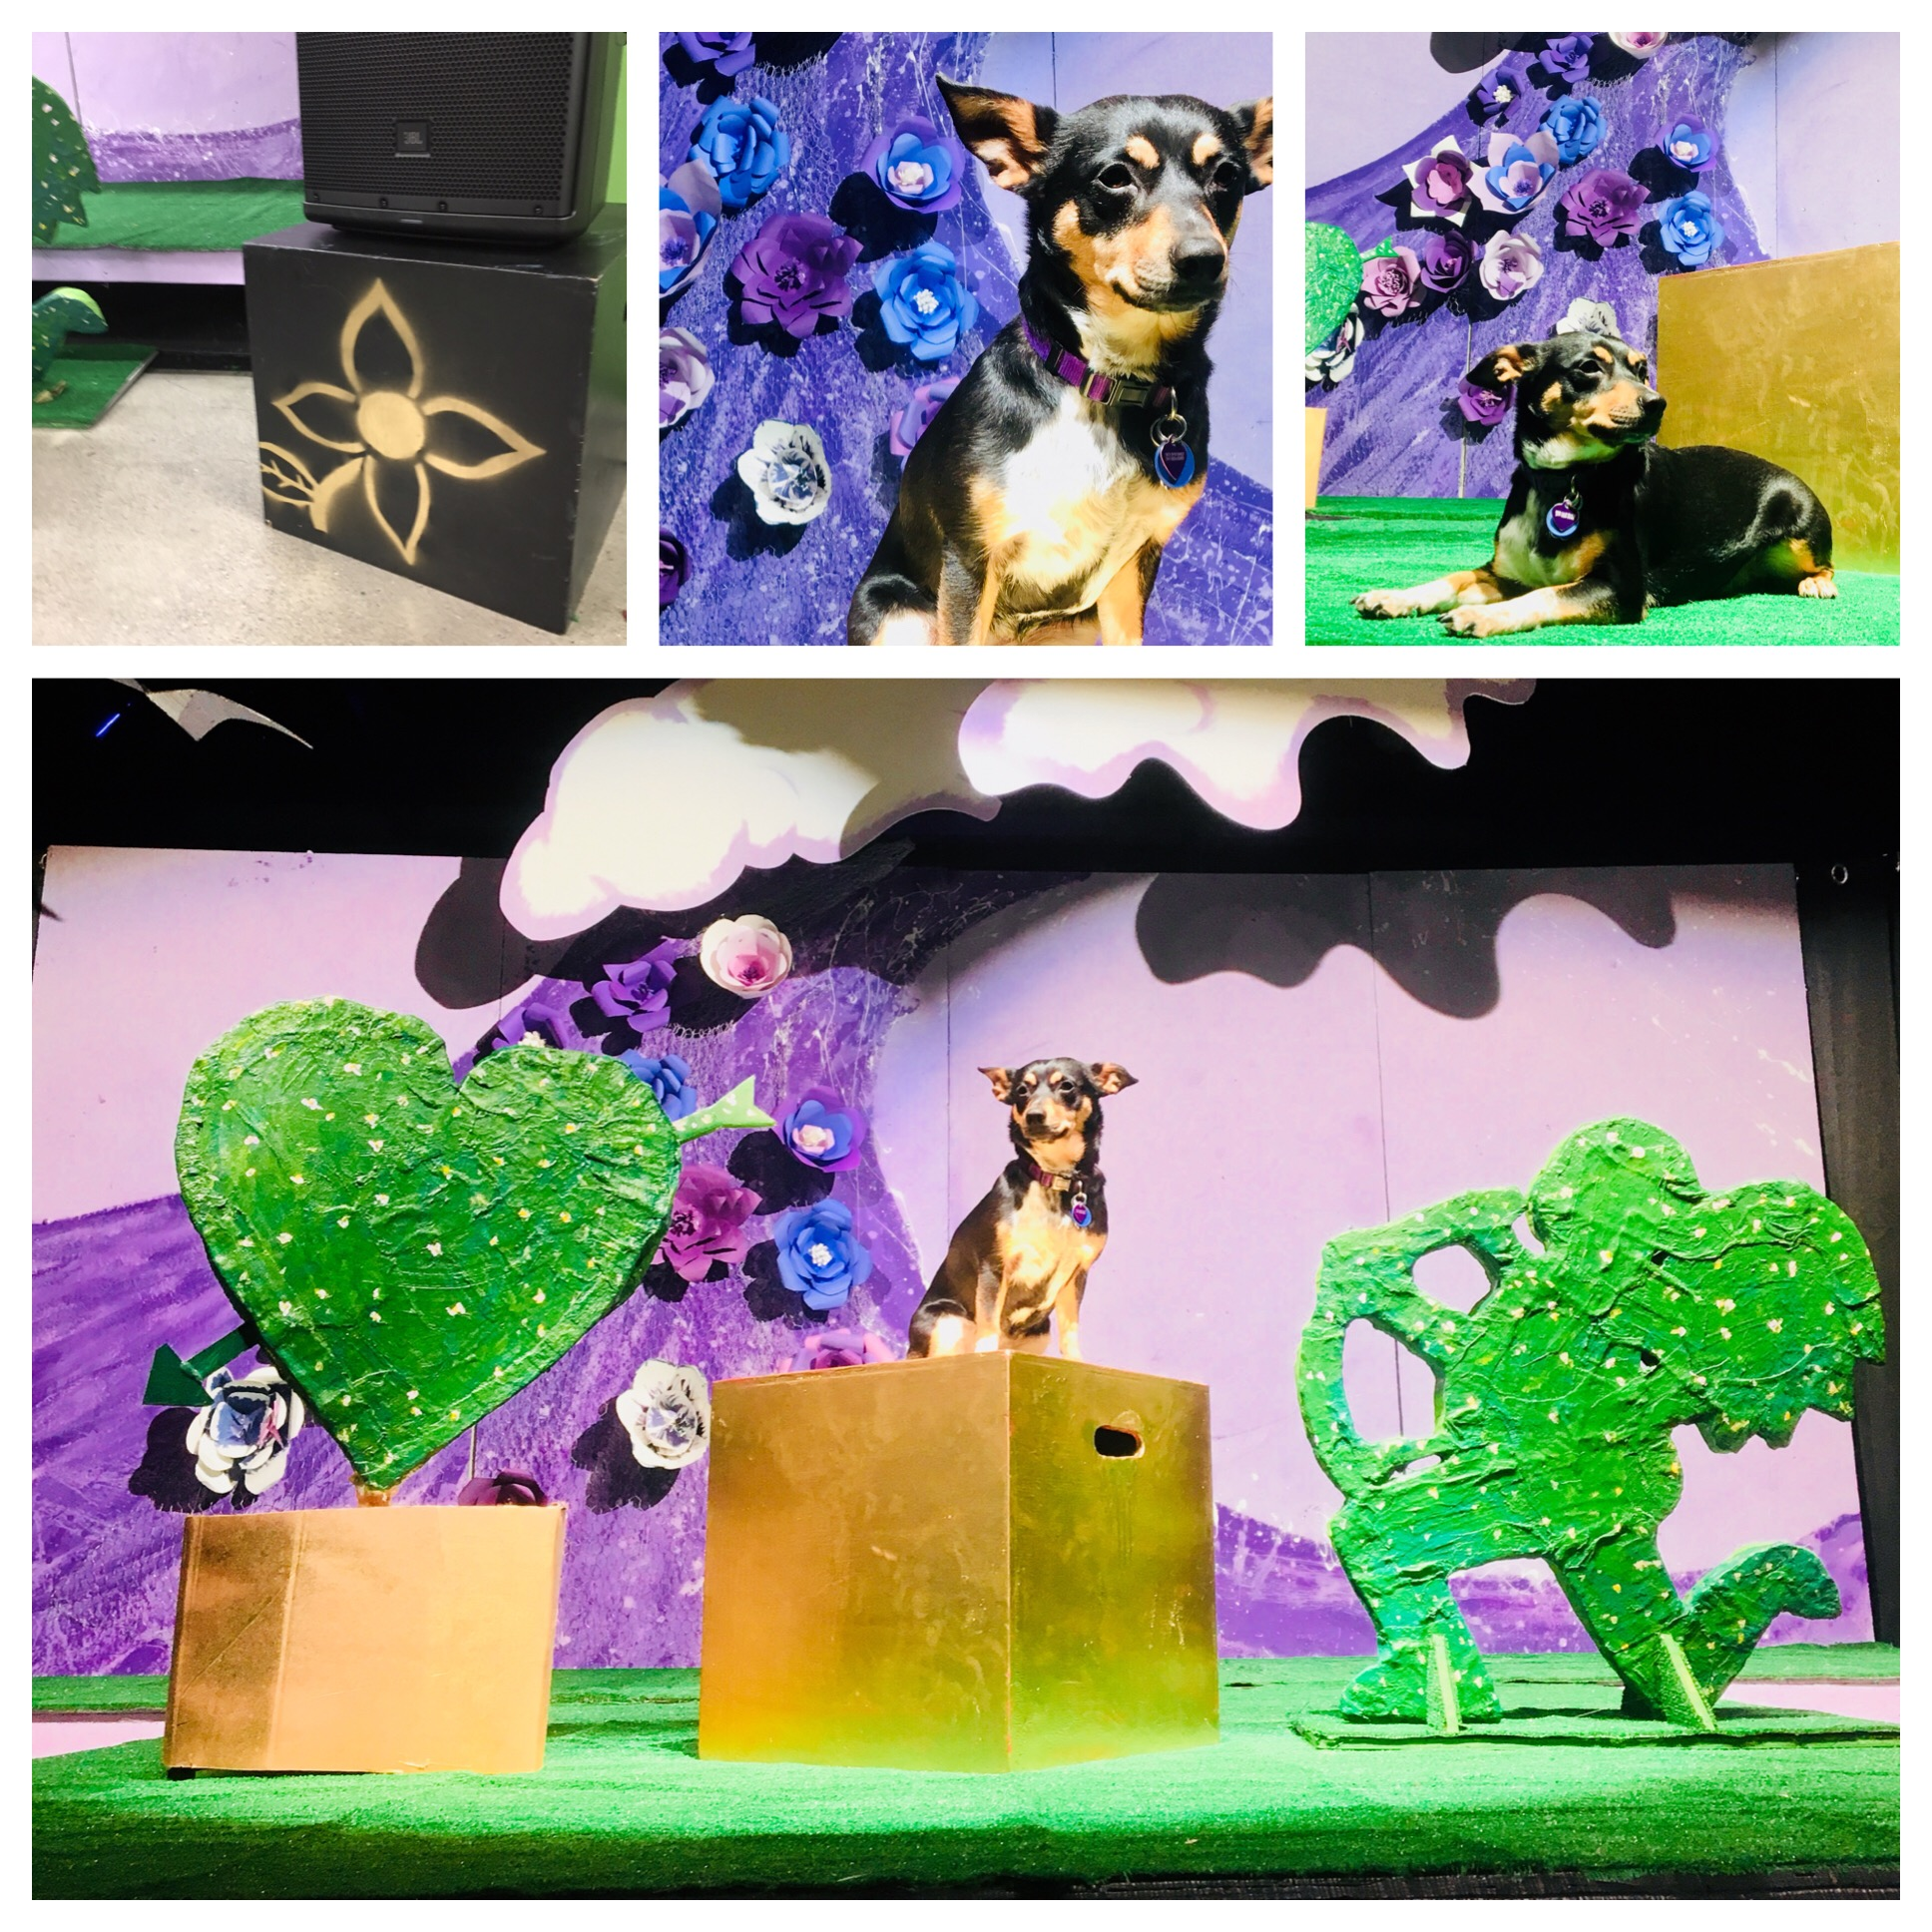 Set Design for '12th Night' at Alta Vista Middle School, May 2018 - Patrick and his wife Katie conceived, designed and built the set for the spring play with the help of several AVS students. Katie also directed. Junie the dog is the canine stand-in in the photos.